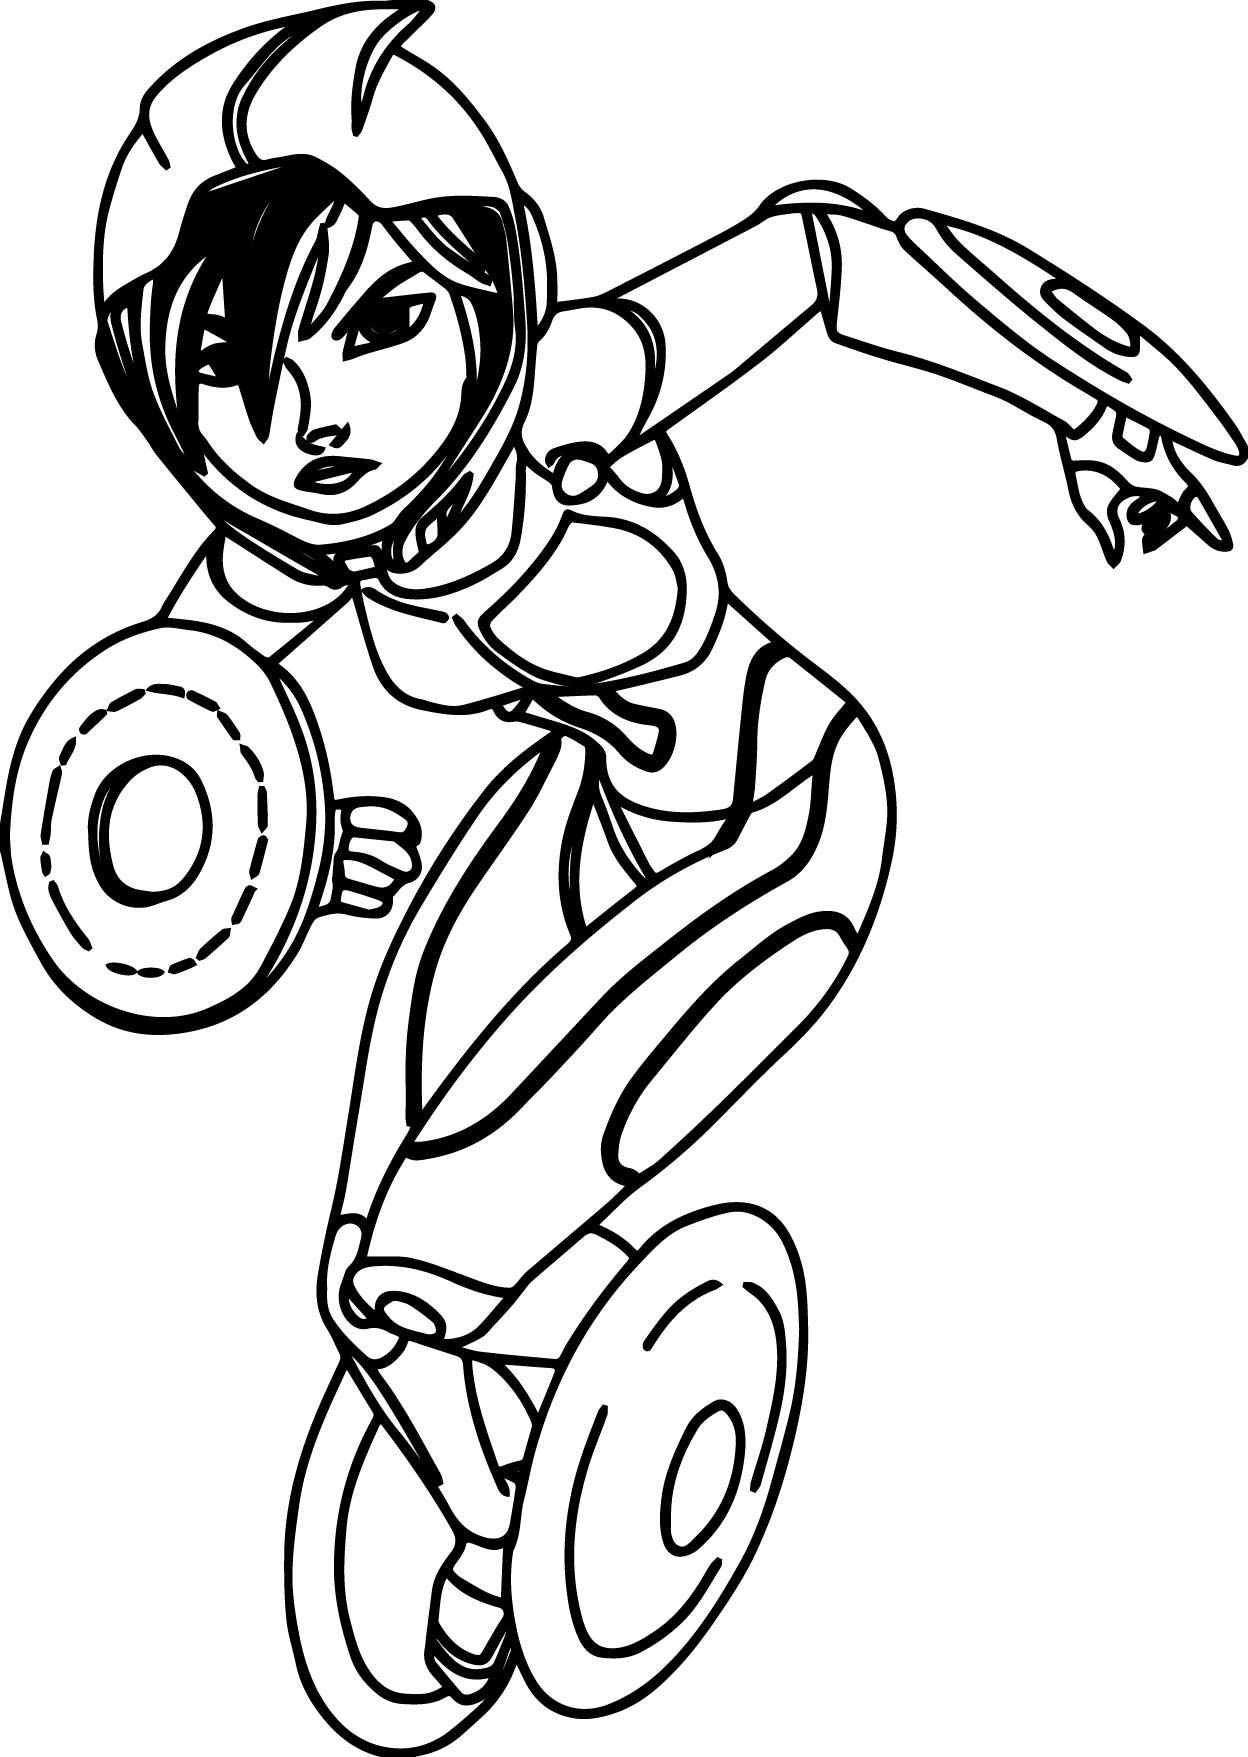 Cool Big Hero 6 Characters Gogo Tomago Coloring Page